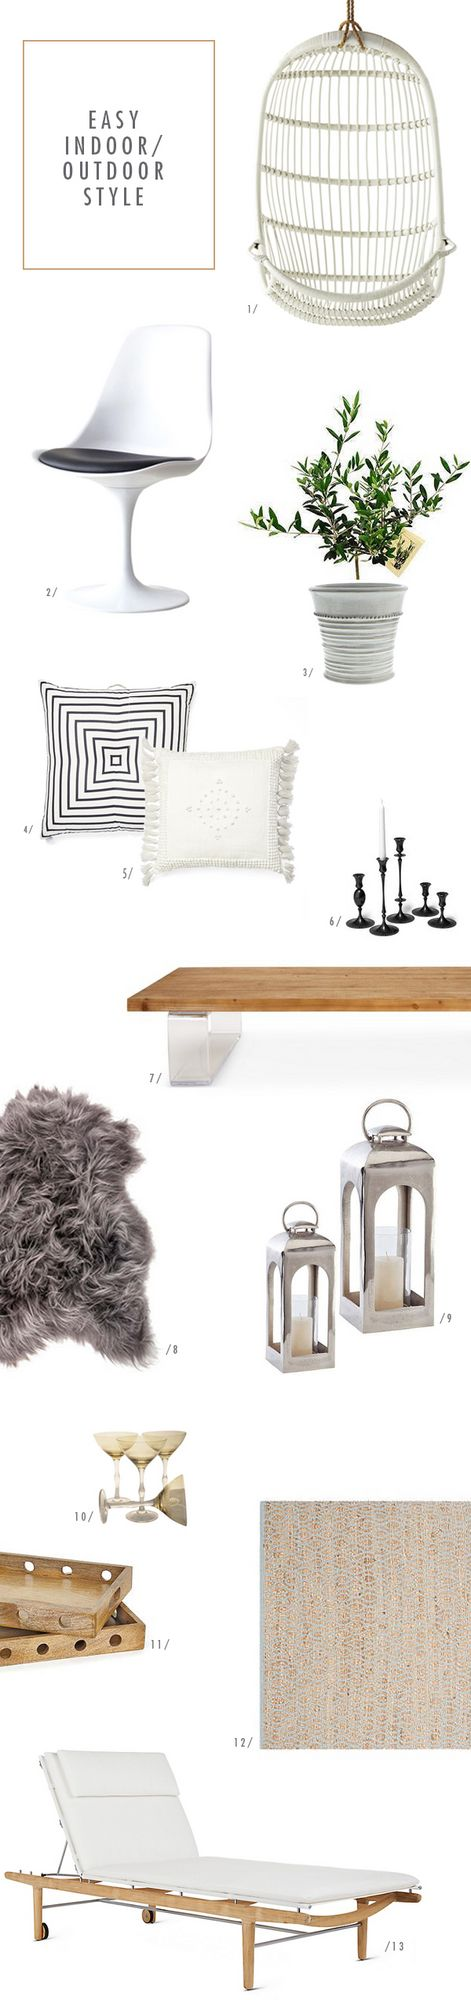 5 easy ways to spruce up your outdoor space apartment 34 bloglovin - Six ways to spruce up your balcony ...